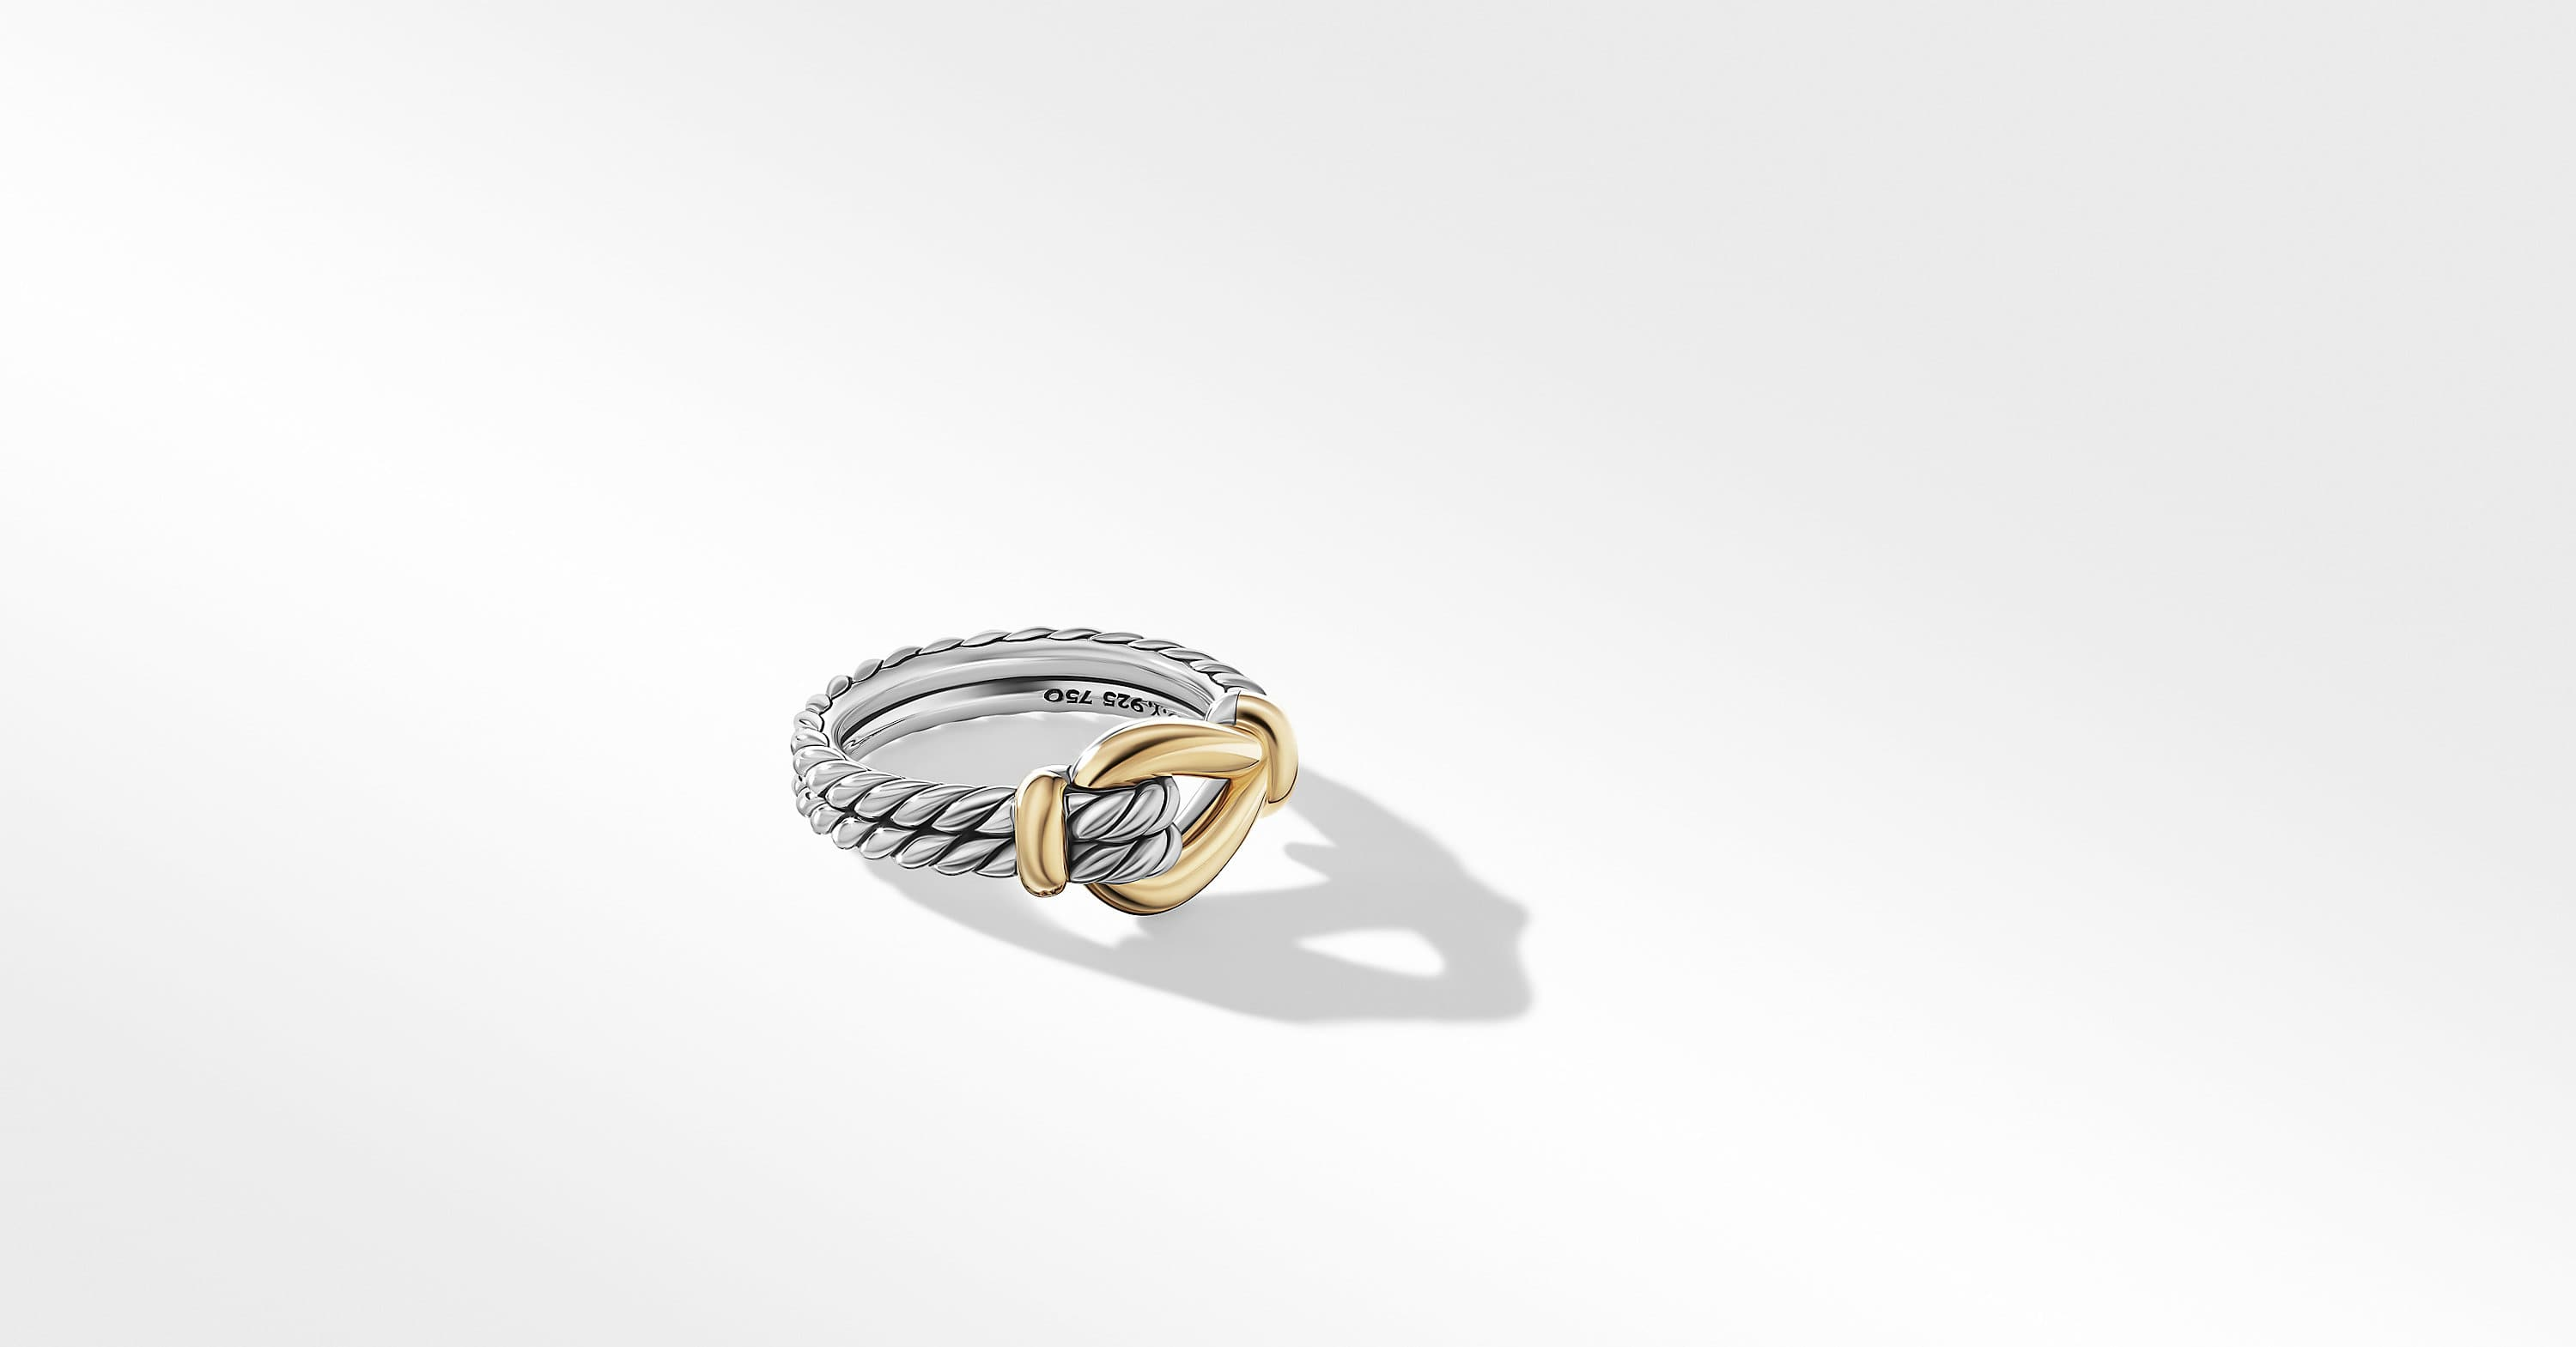 Thoroughbred Loop Ring with 18K Yellow Gold, 9mm